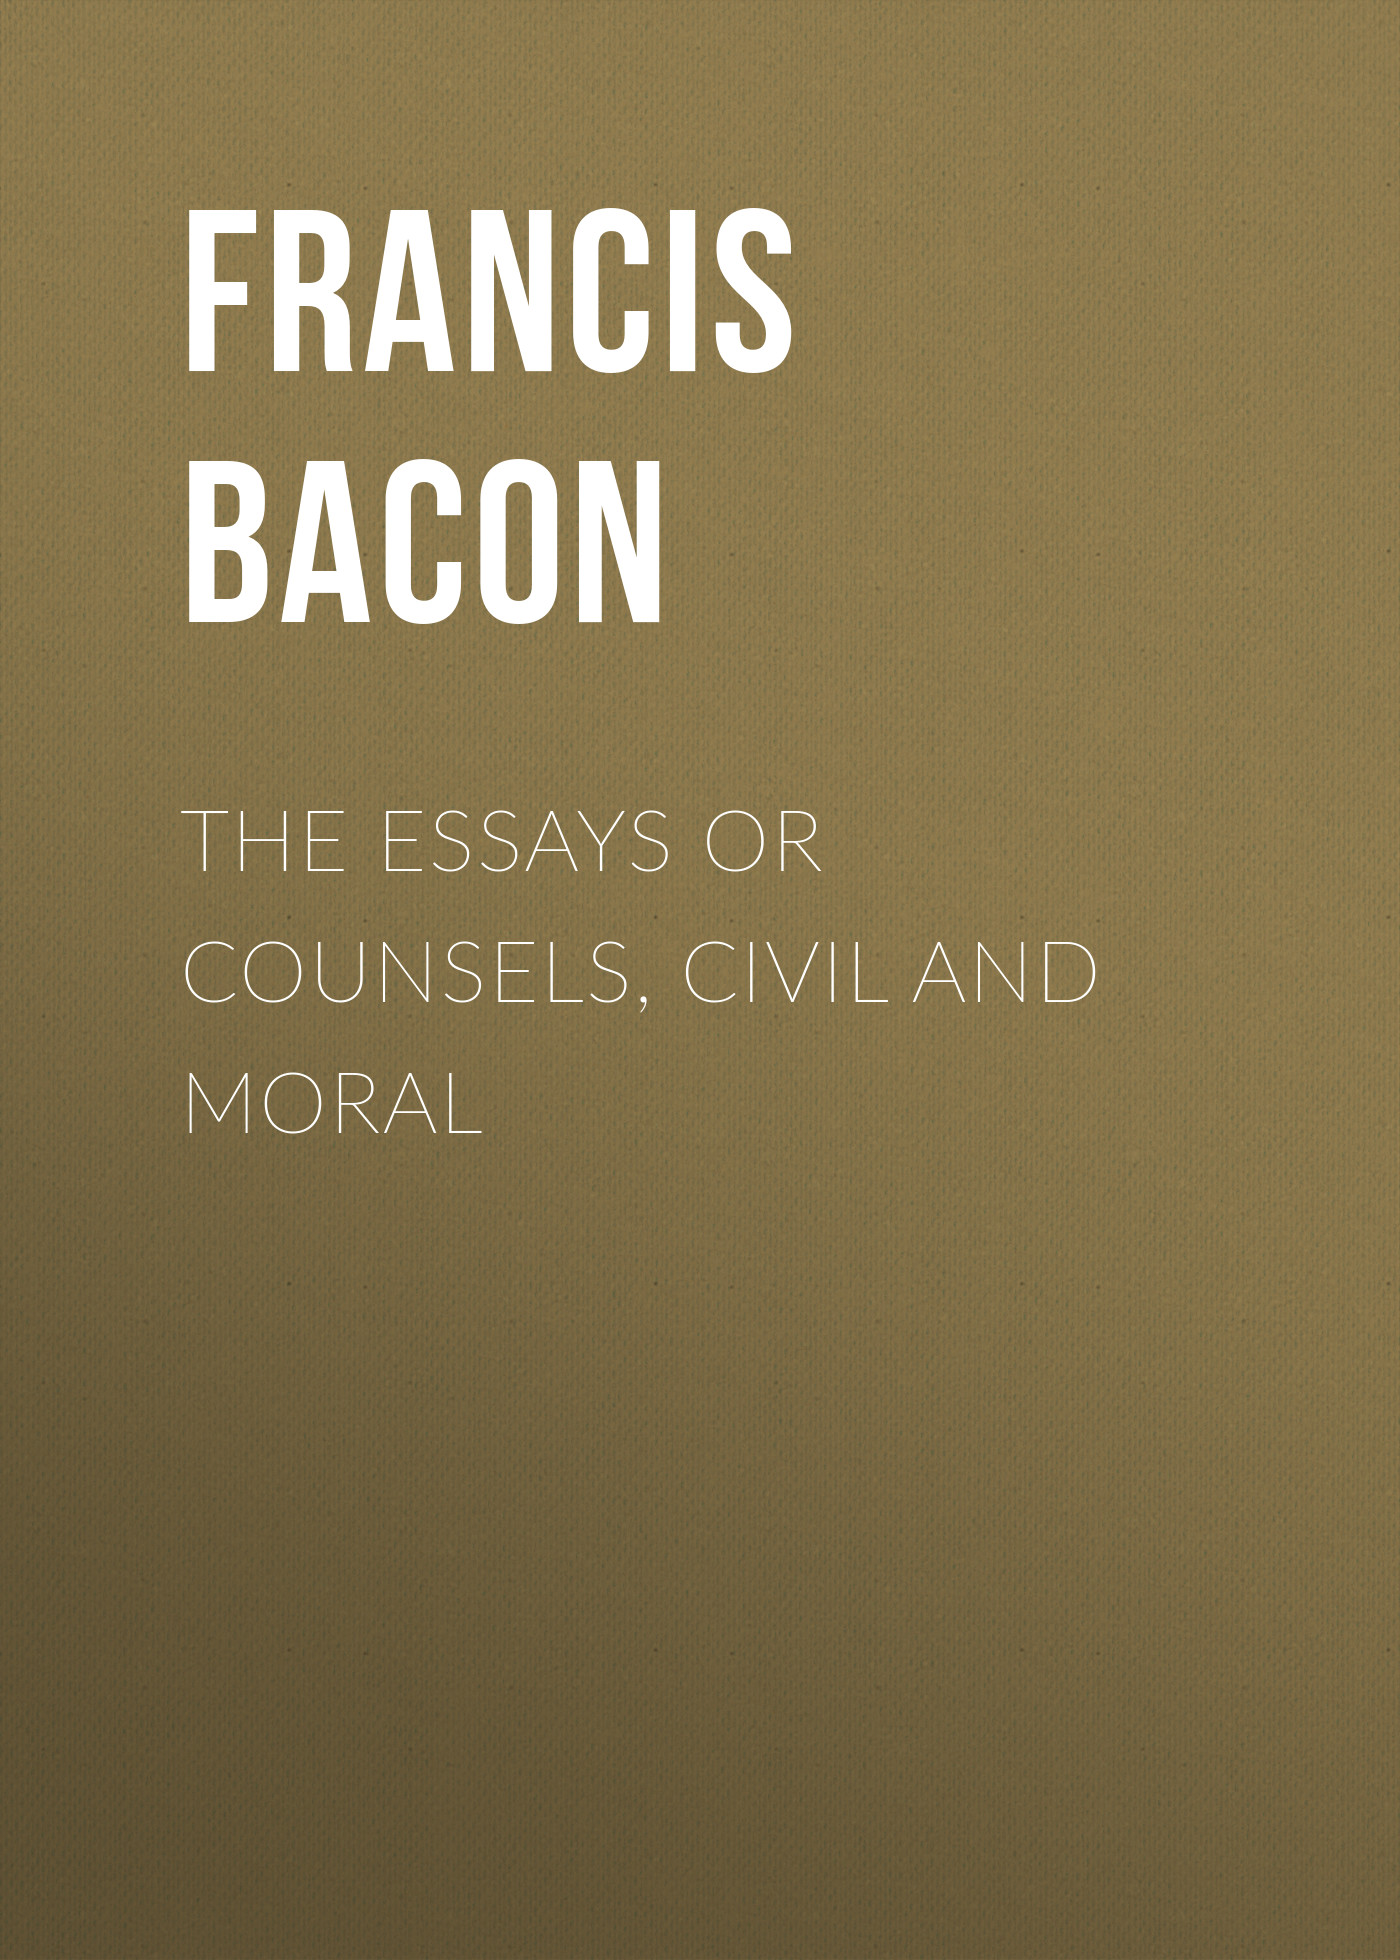 Francis Bacon The Essays or Counsels, Civil and Moral francis bacon novum organum